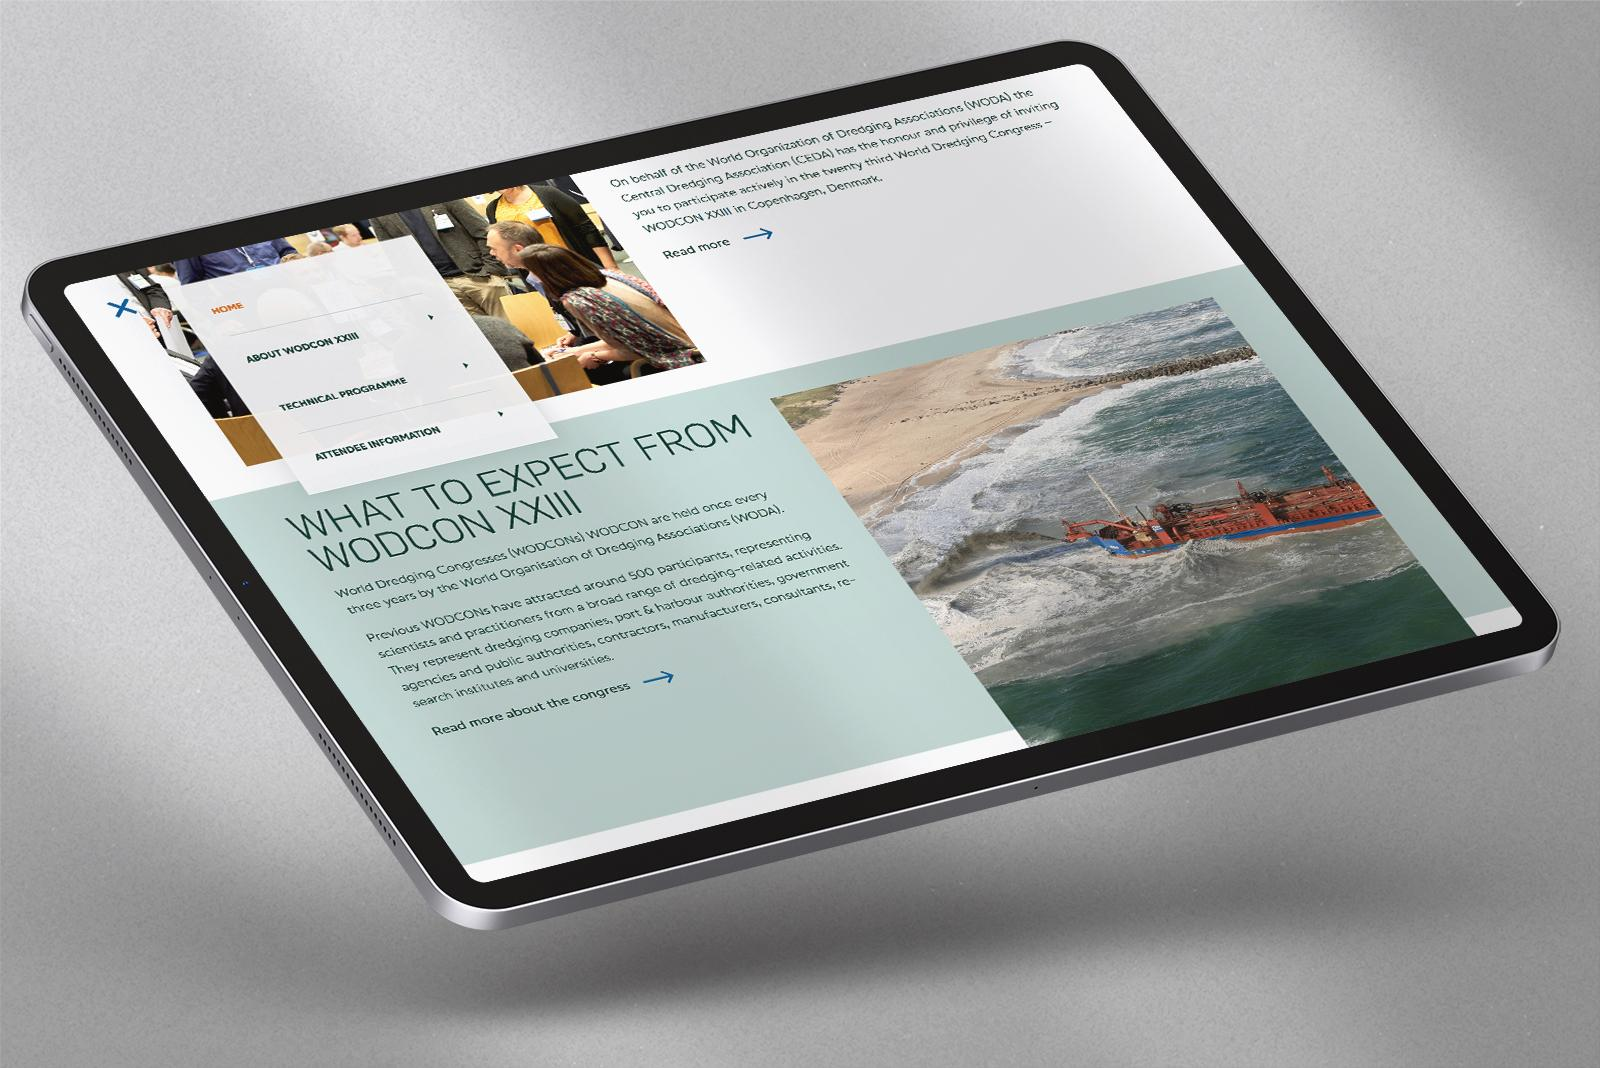 Fixed navigation shown on an iPad Pro.